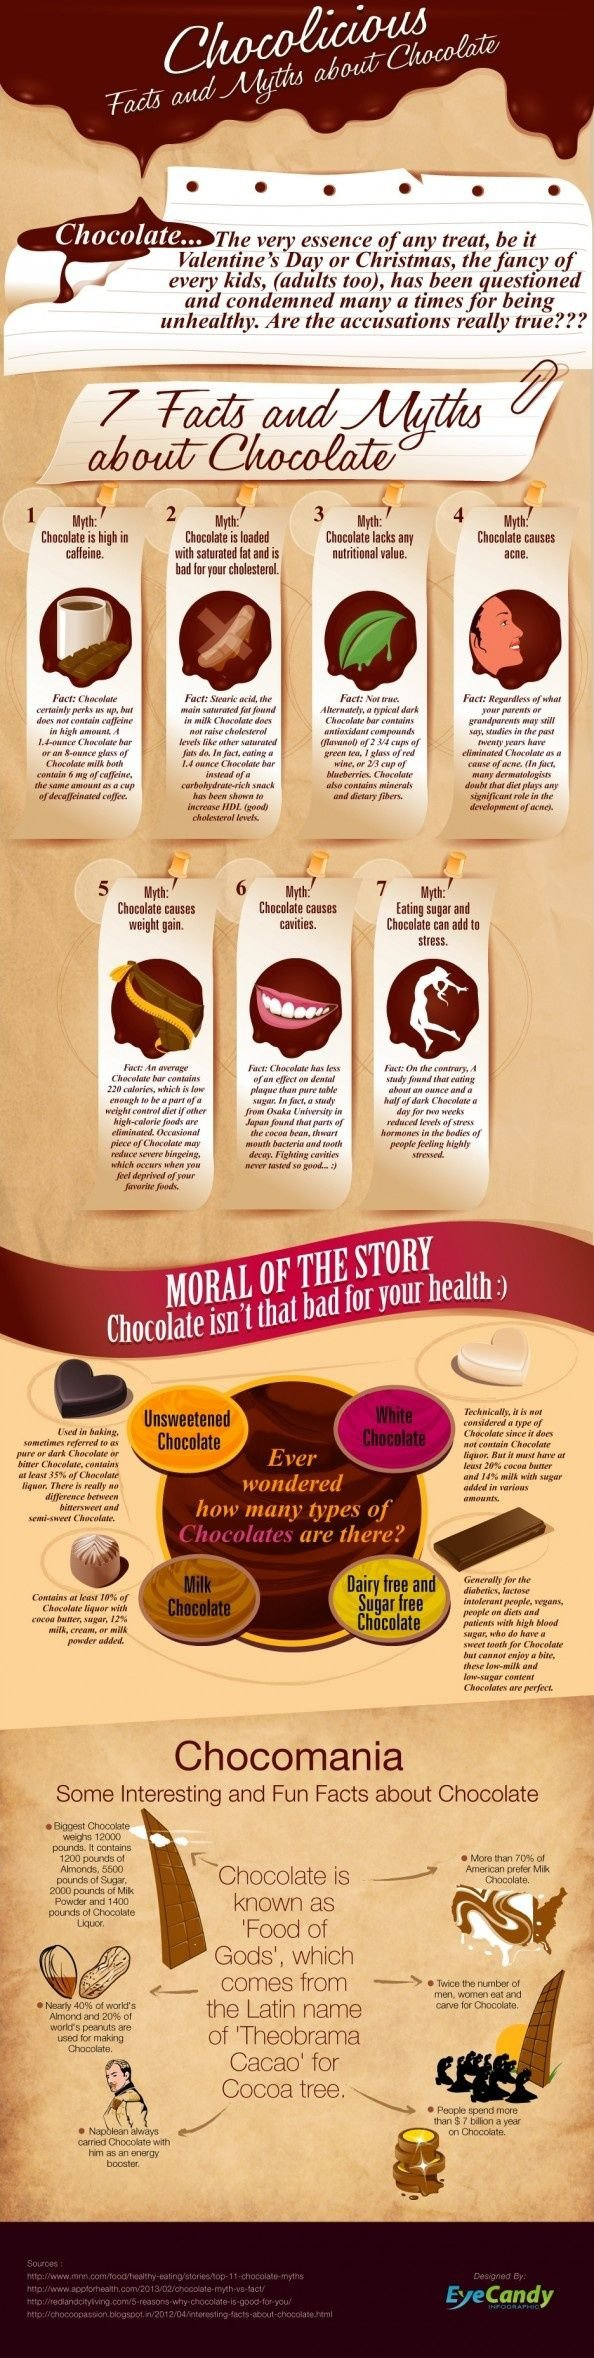 Chocolicious Facts about Chocolate